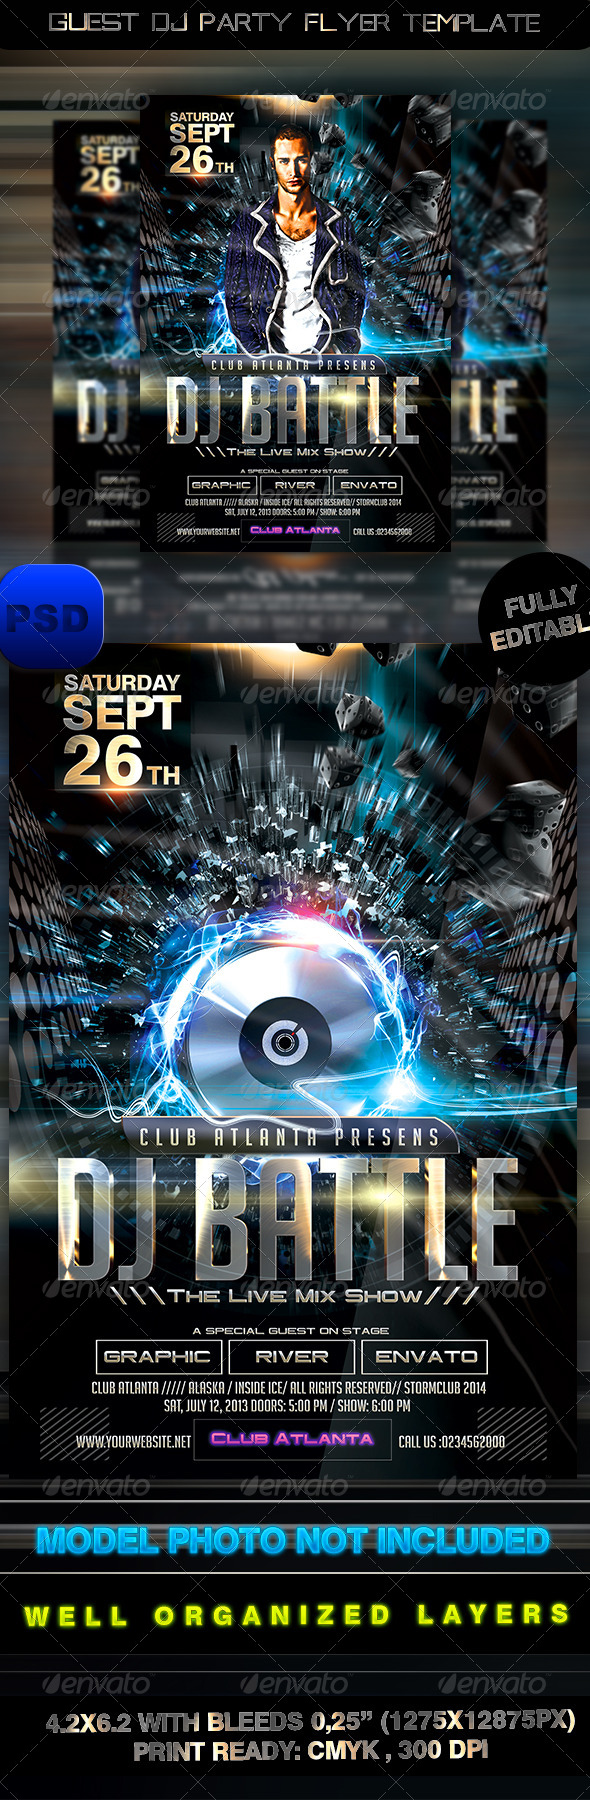 GraphicRiver Guest Dj Party Flyer Template 8423875